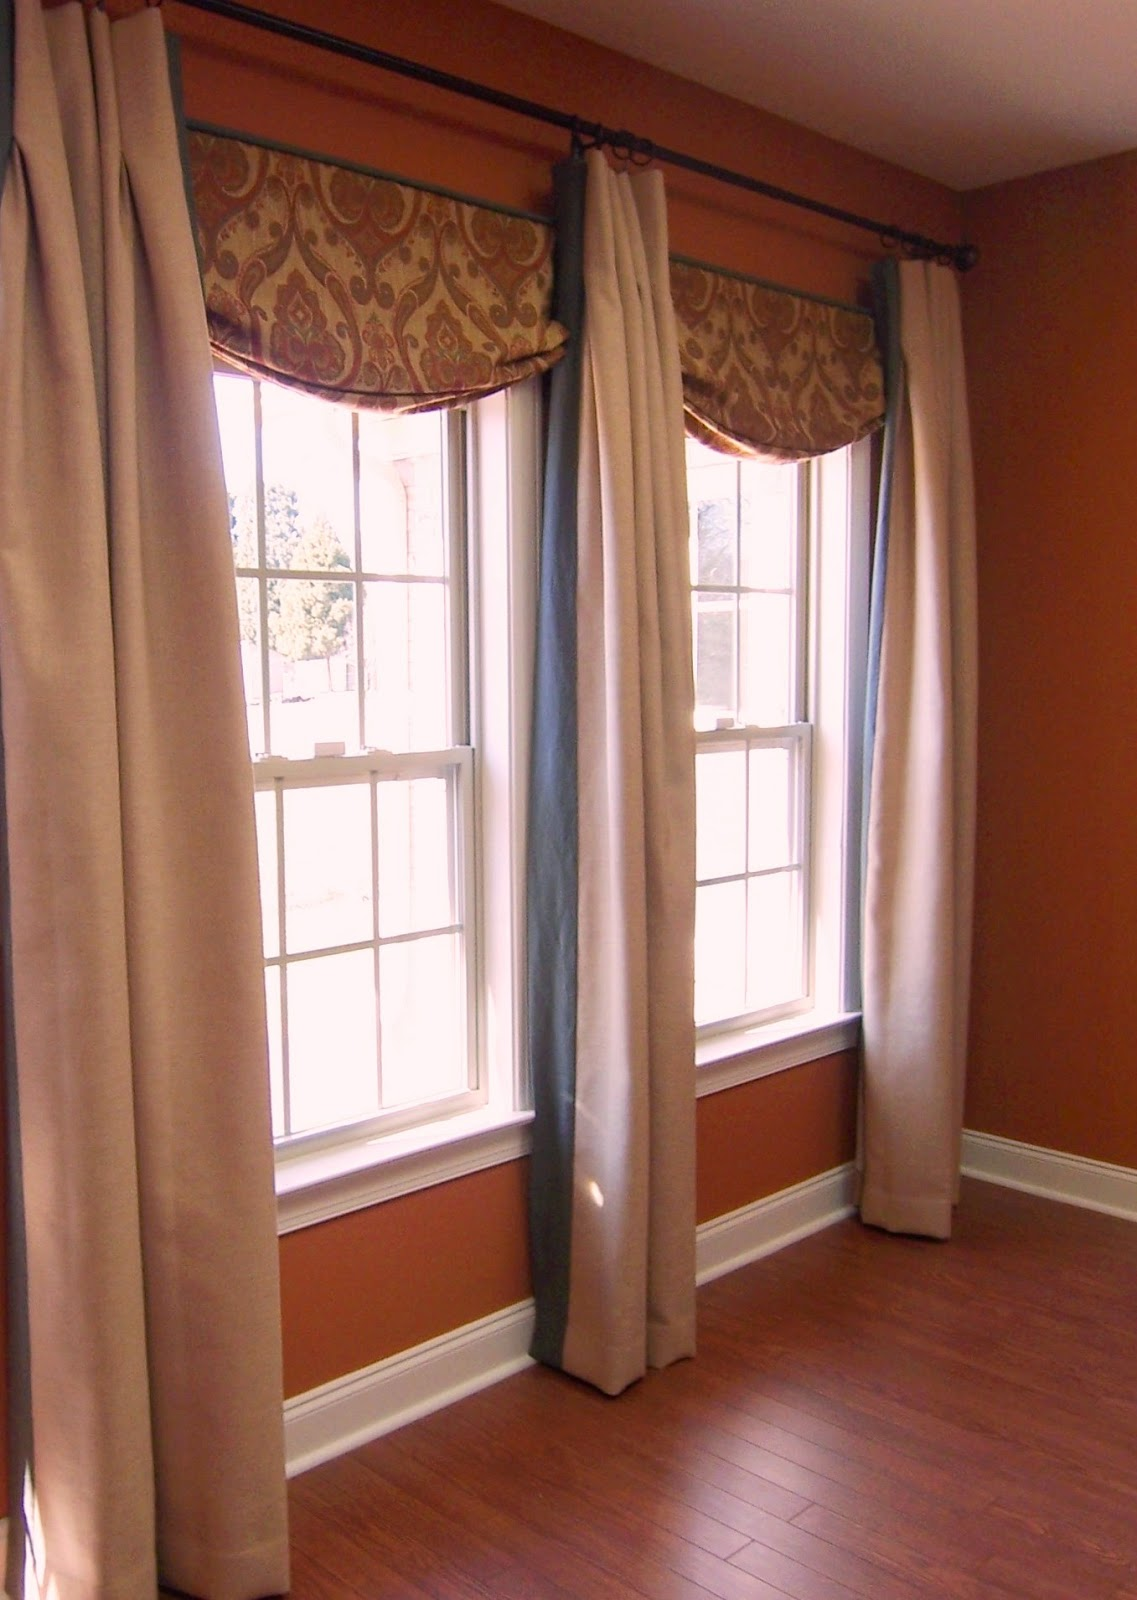 How to window treatments for transom windows window works.